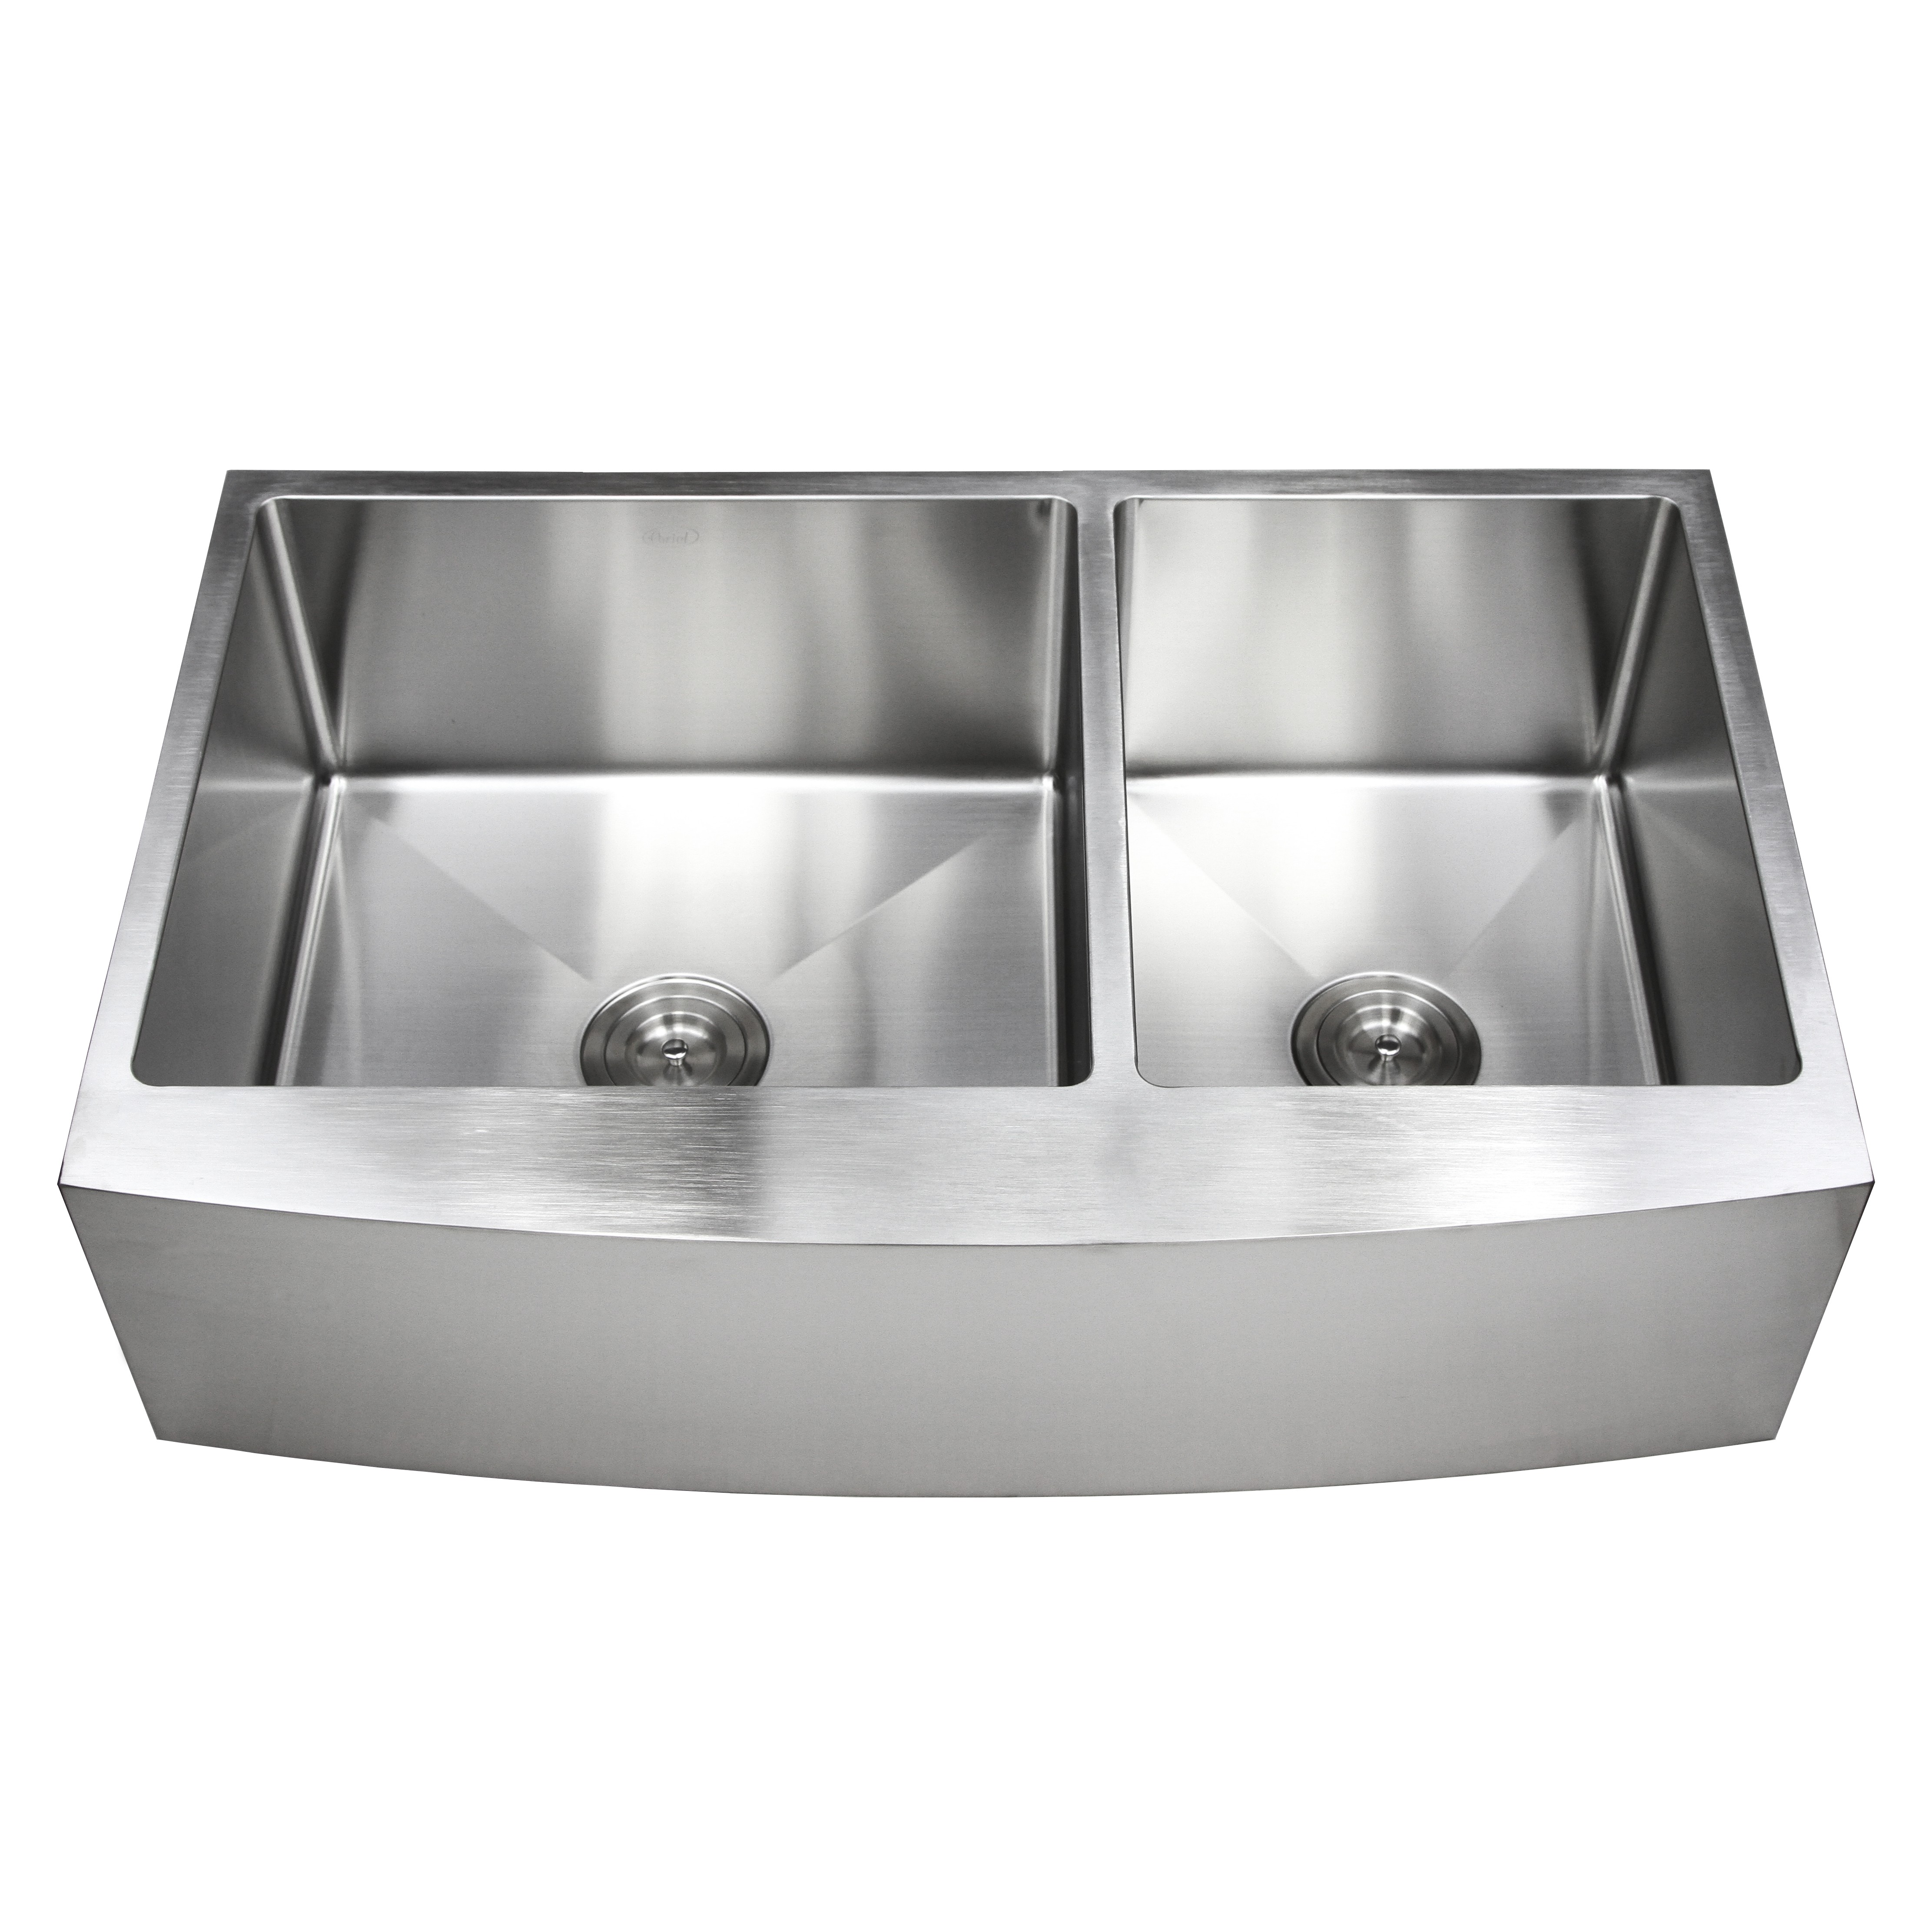 36 Inch Stainless Steel Curved Front Farm Apron 6040. Triangle Kitchen Cabinets. Red Oak Kitchen Cabinets. Oak Shaker Style Kitchen Cabinets. Gray Kitchen With Oak Cabinets. Calgary Kitchen Cabinets. Classic Kitchen Cabinets. Cleaning Inside Kitchen Cabinets. What To Paint Kitchen Cabinets With